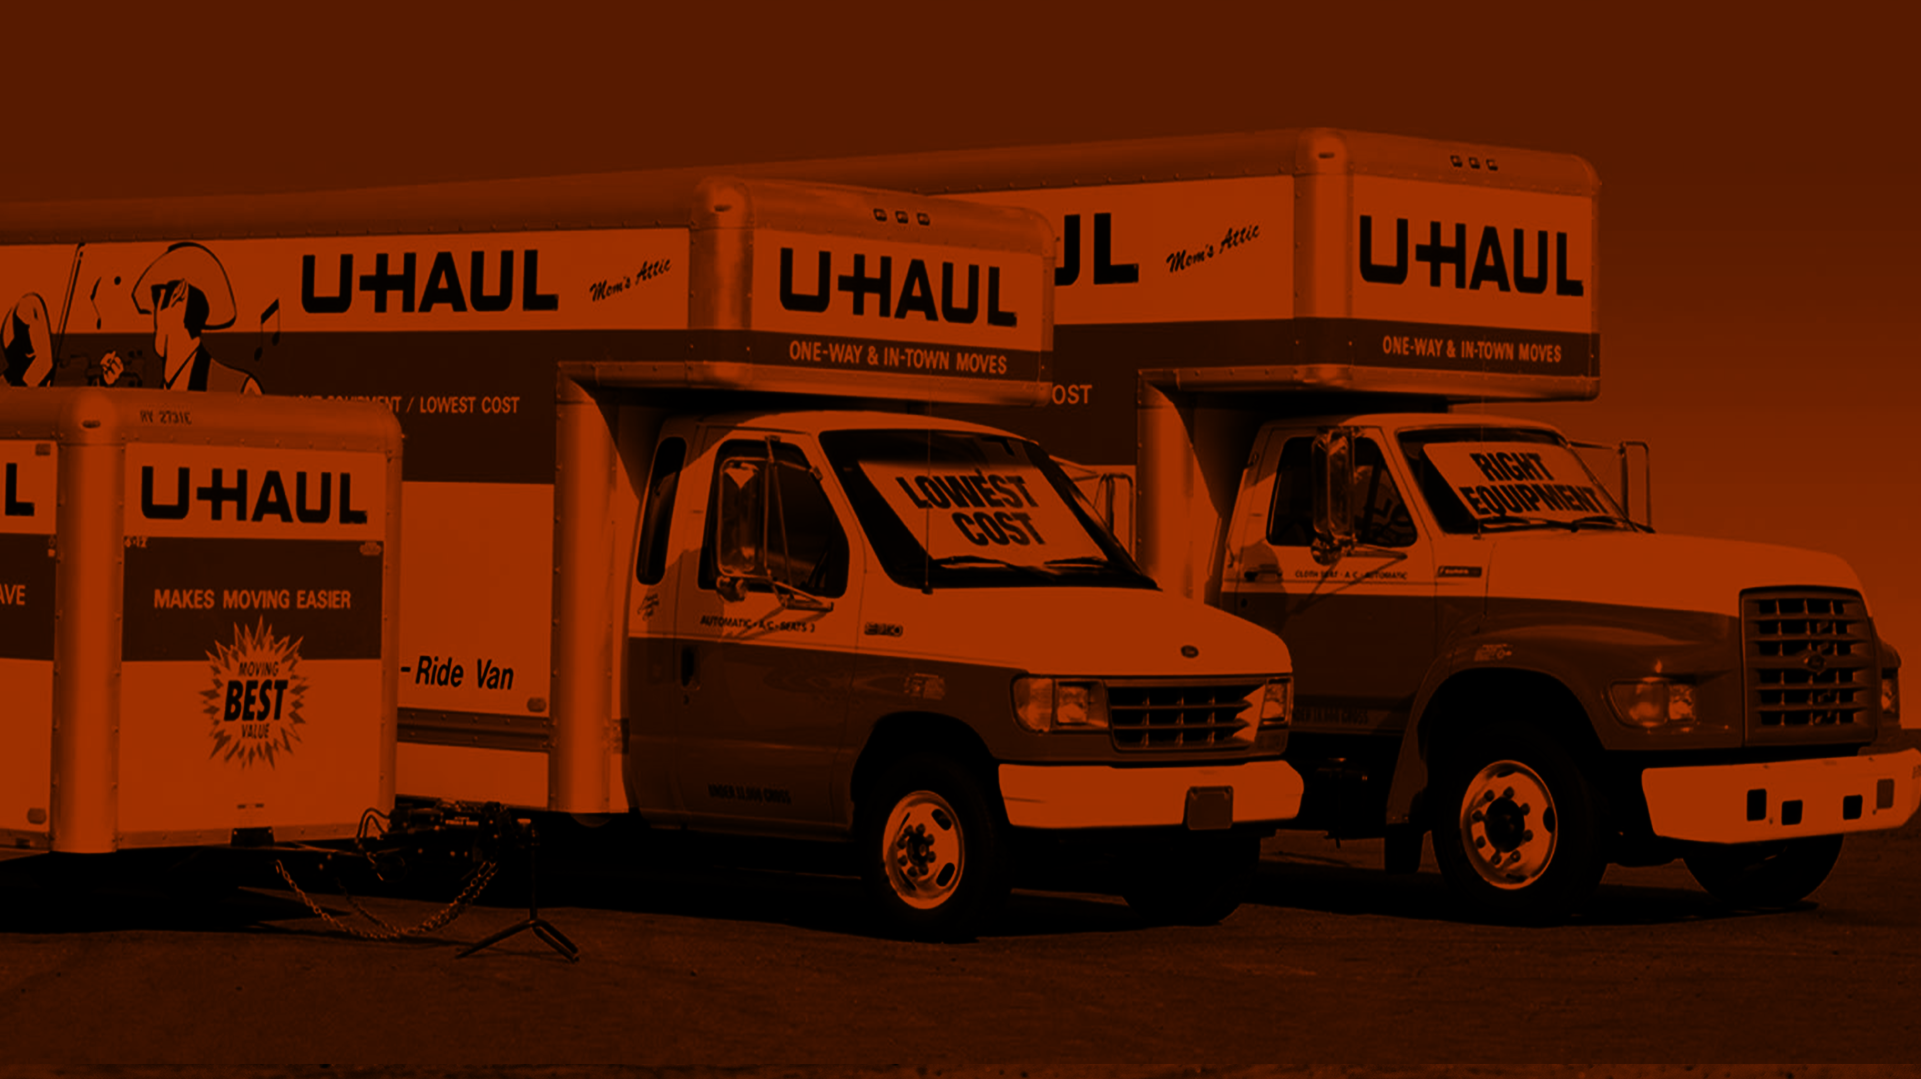 """""""'..this is a great product and the crew loves using it to the point they are fighting over it. Keep up the great job!""""   Linwood D Warren Jr, Shop Manager, U-Haul, CT    I WANT TO TRY MAXX START"""